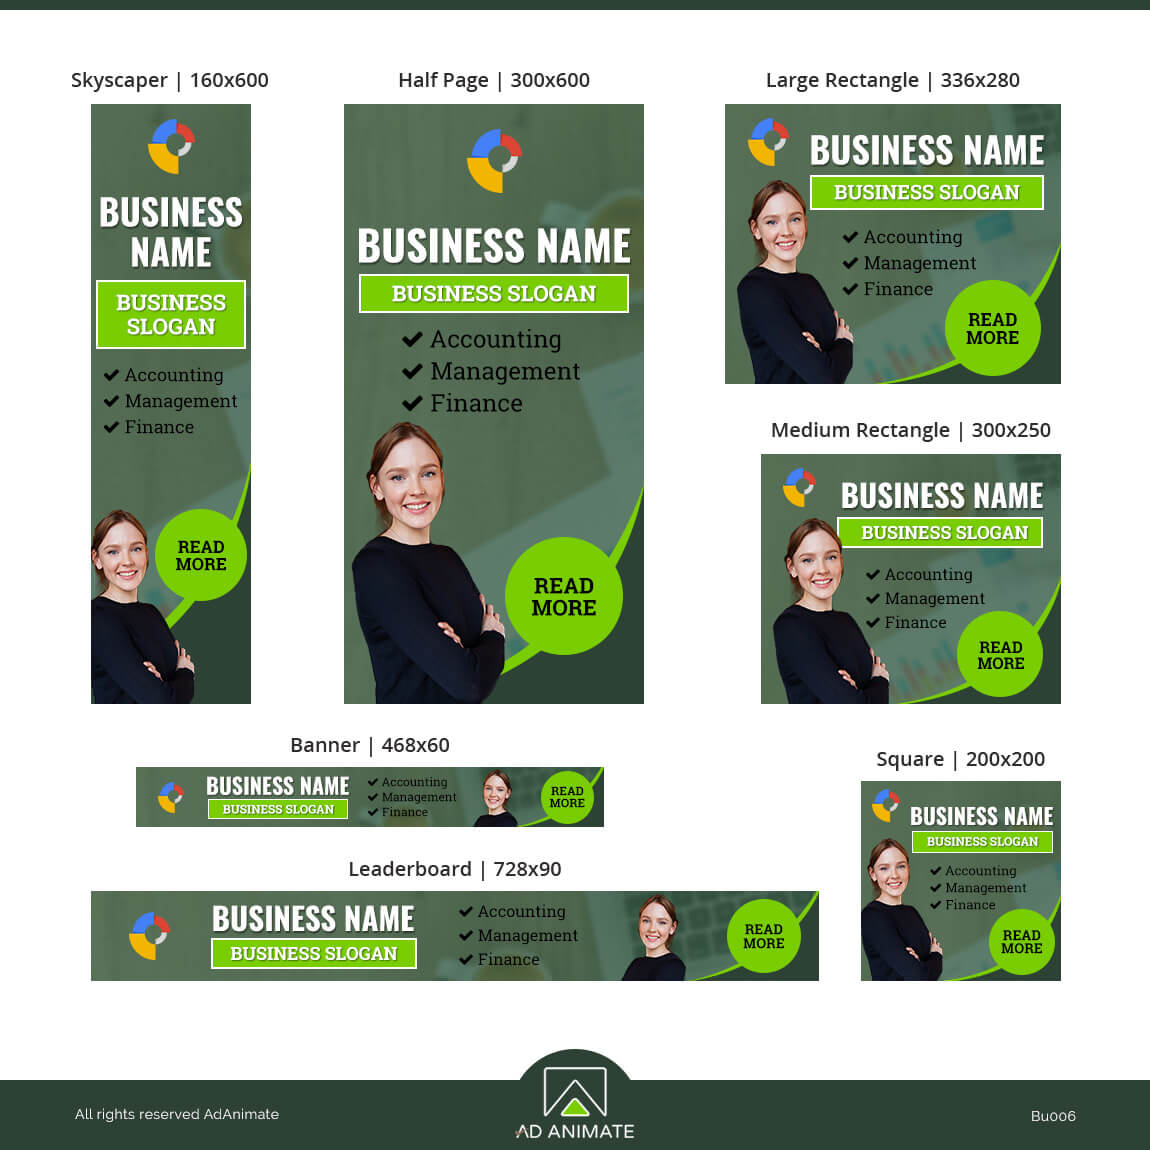 business-banner-ad